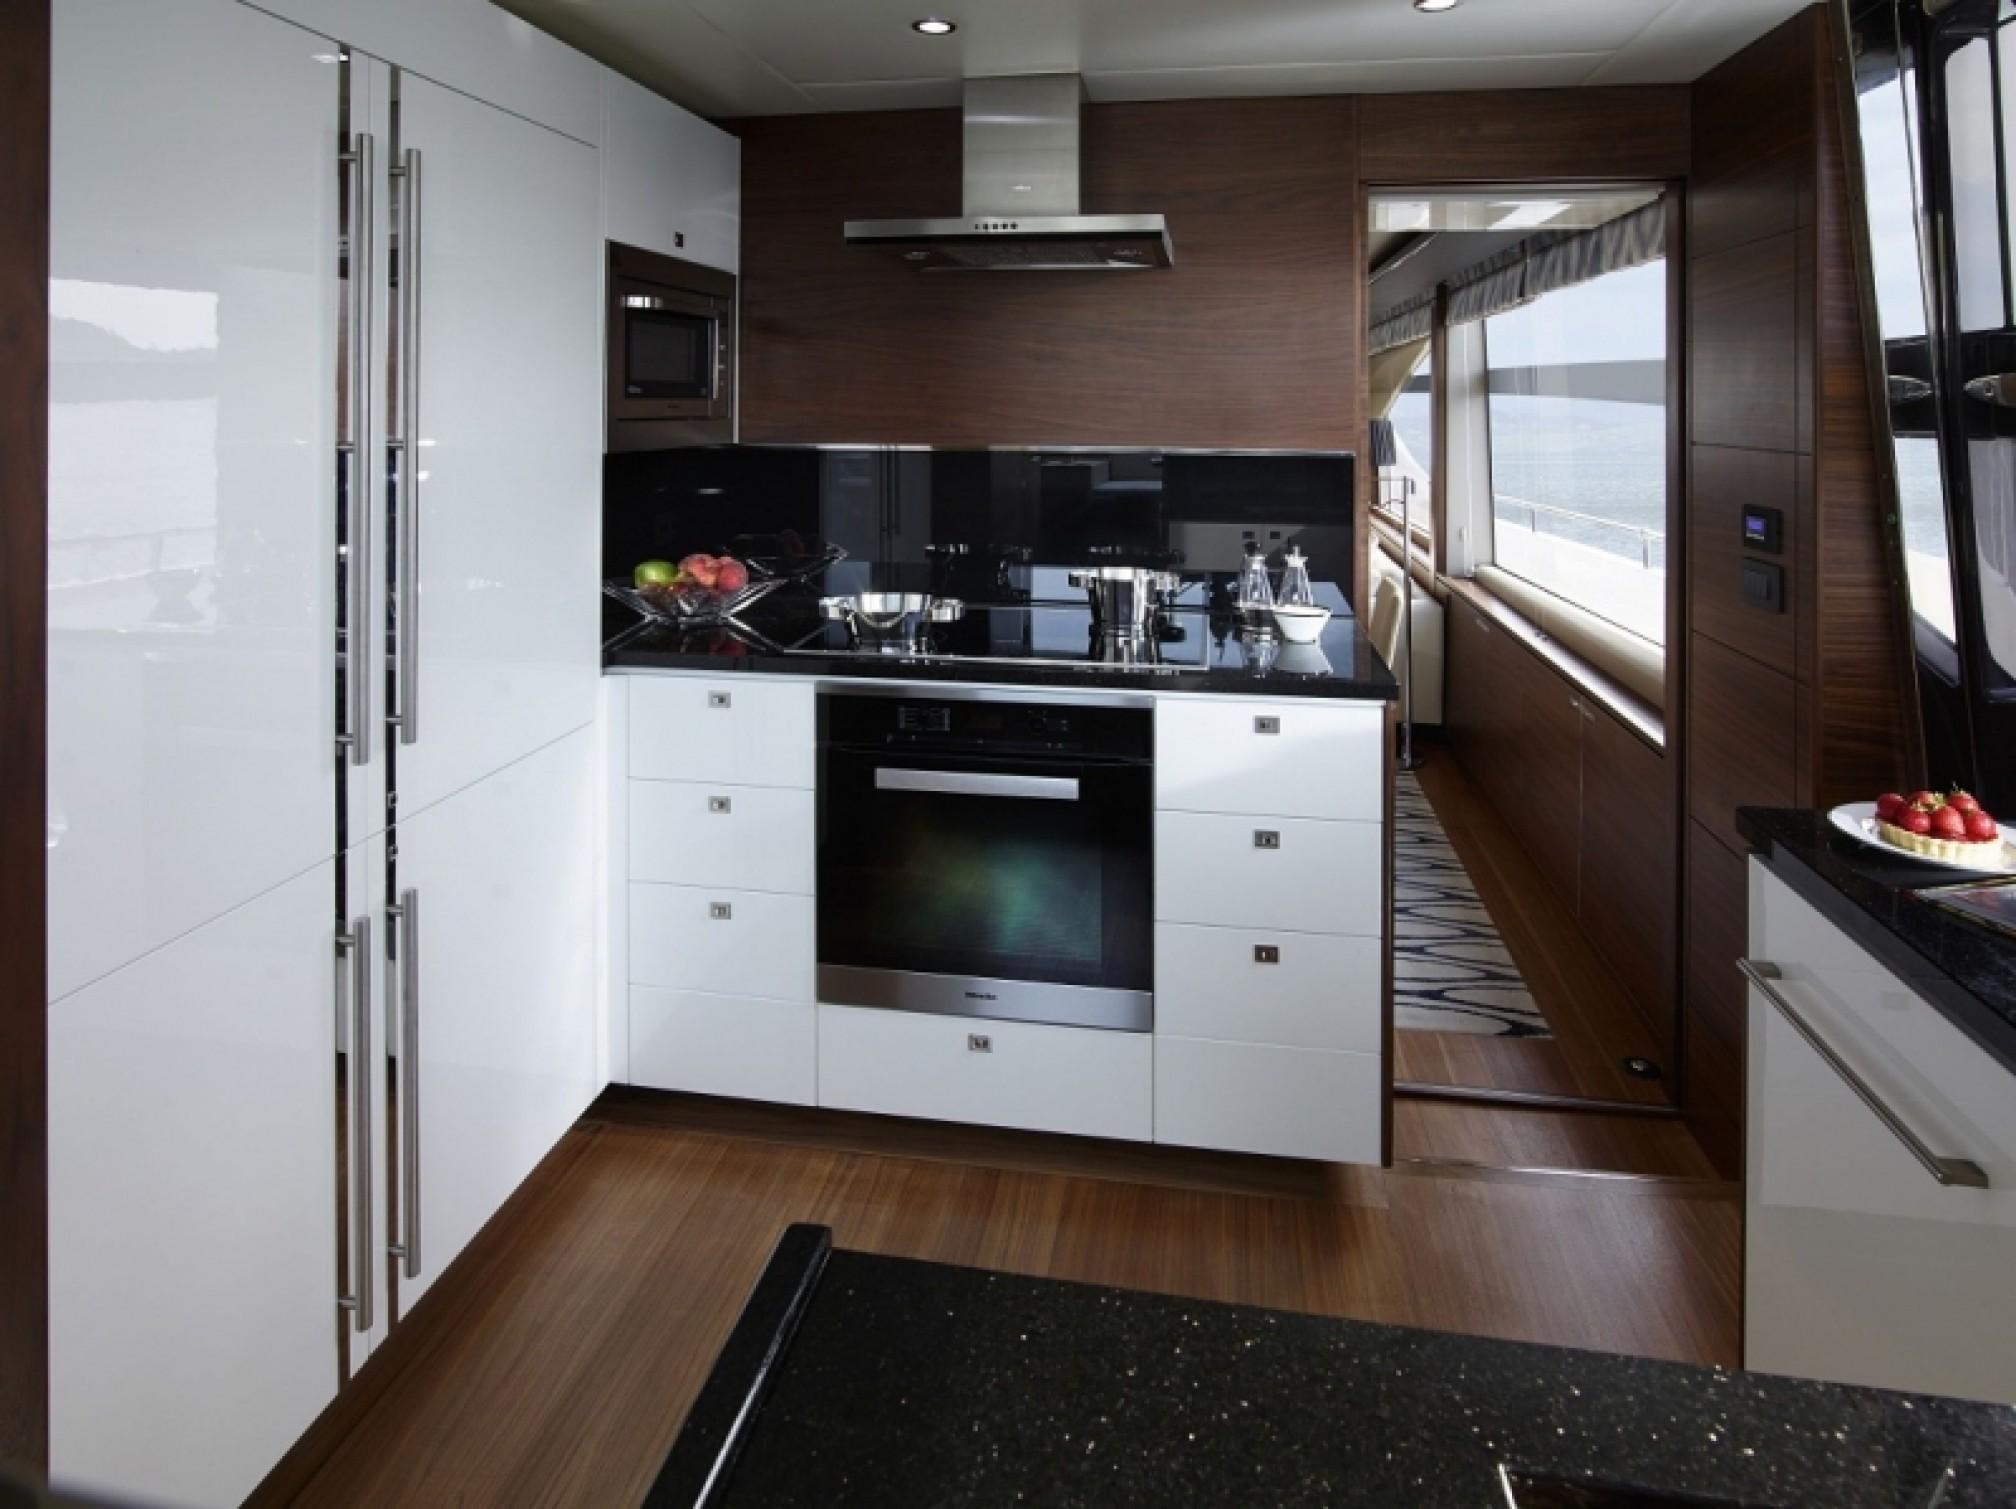 Princess 85 yacht charter kitchen